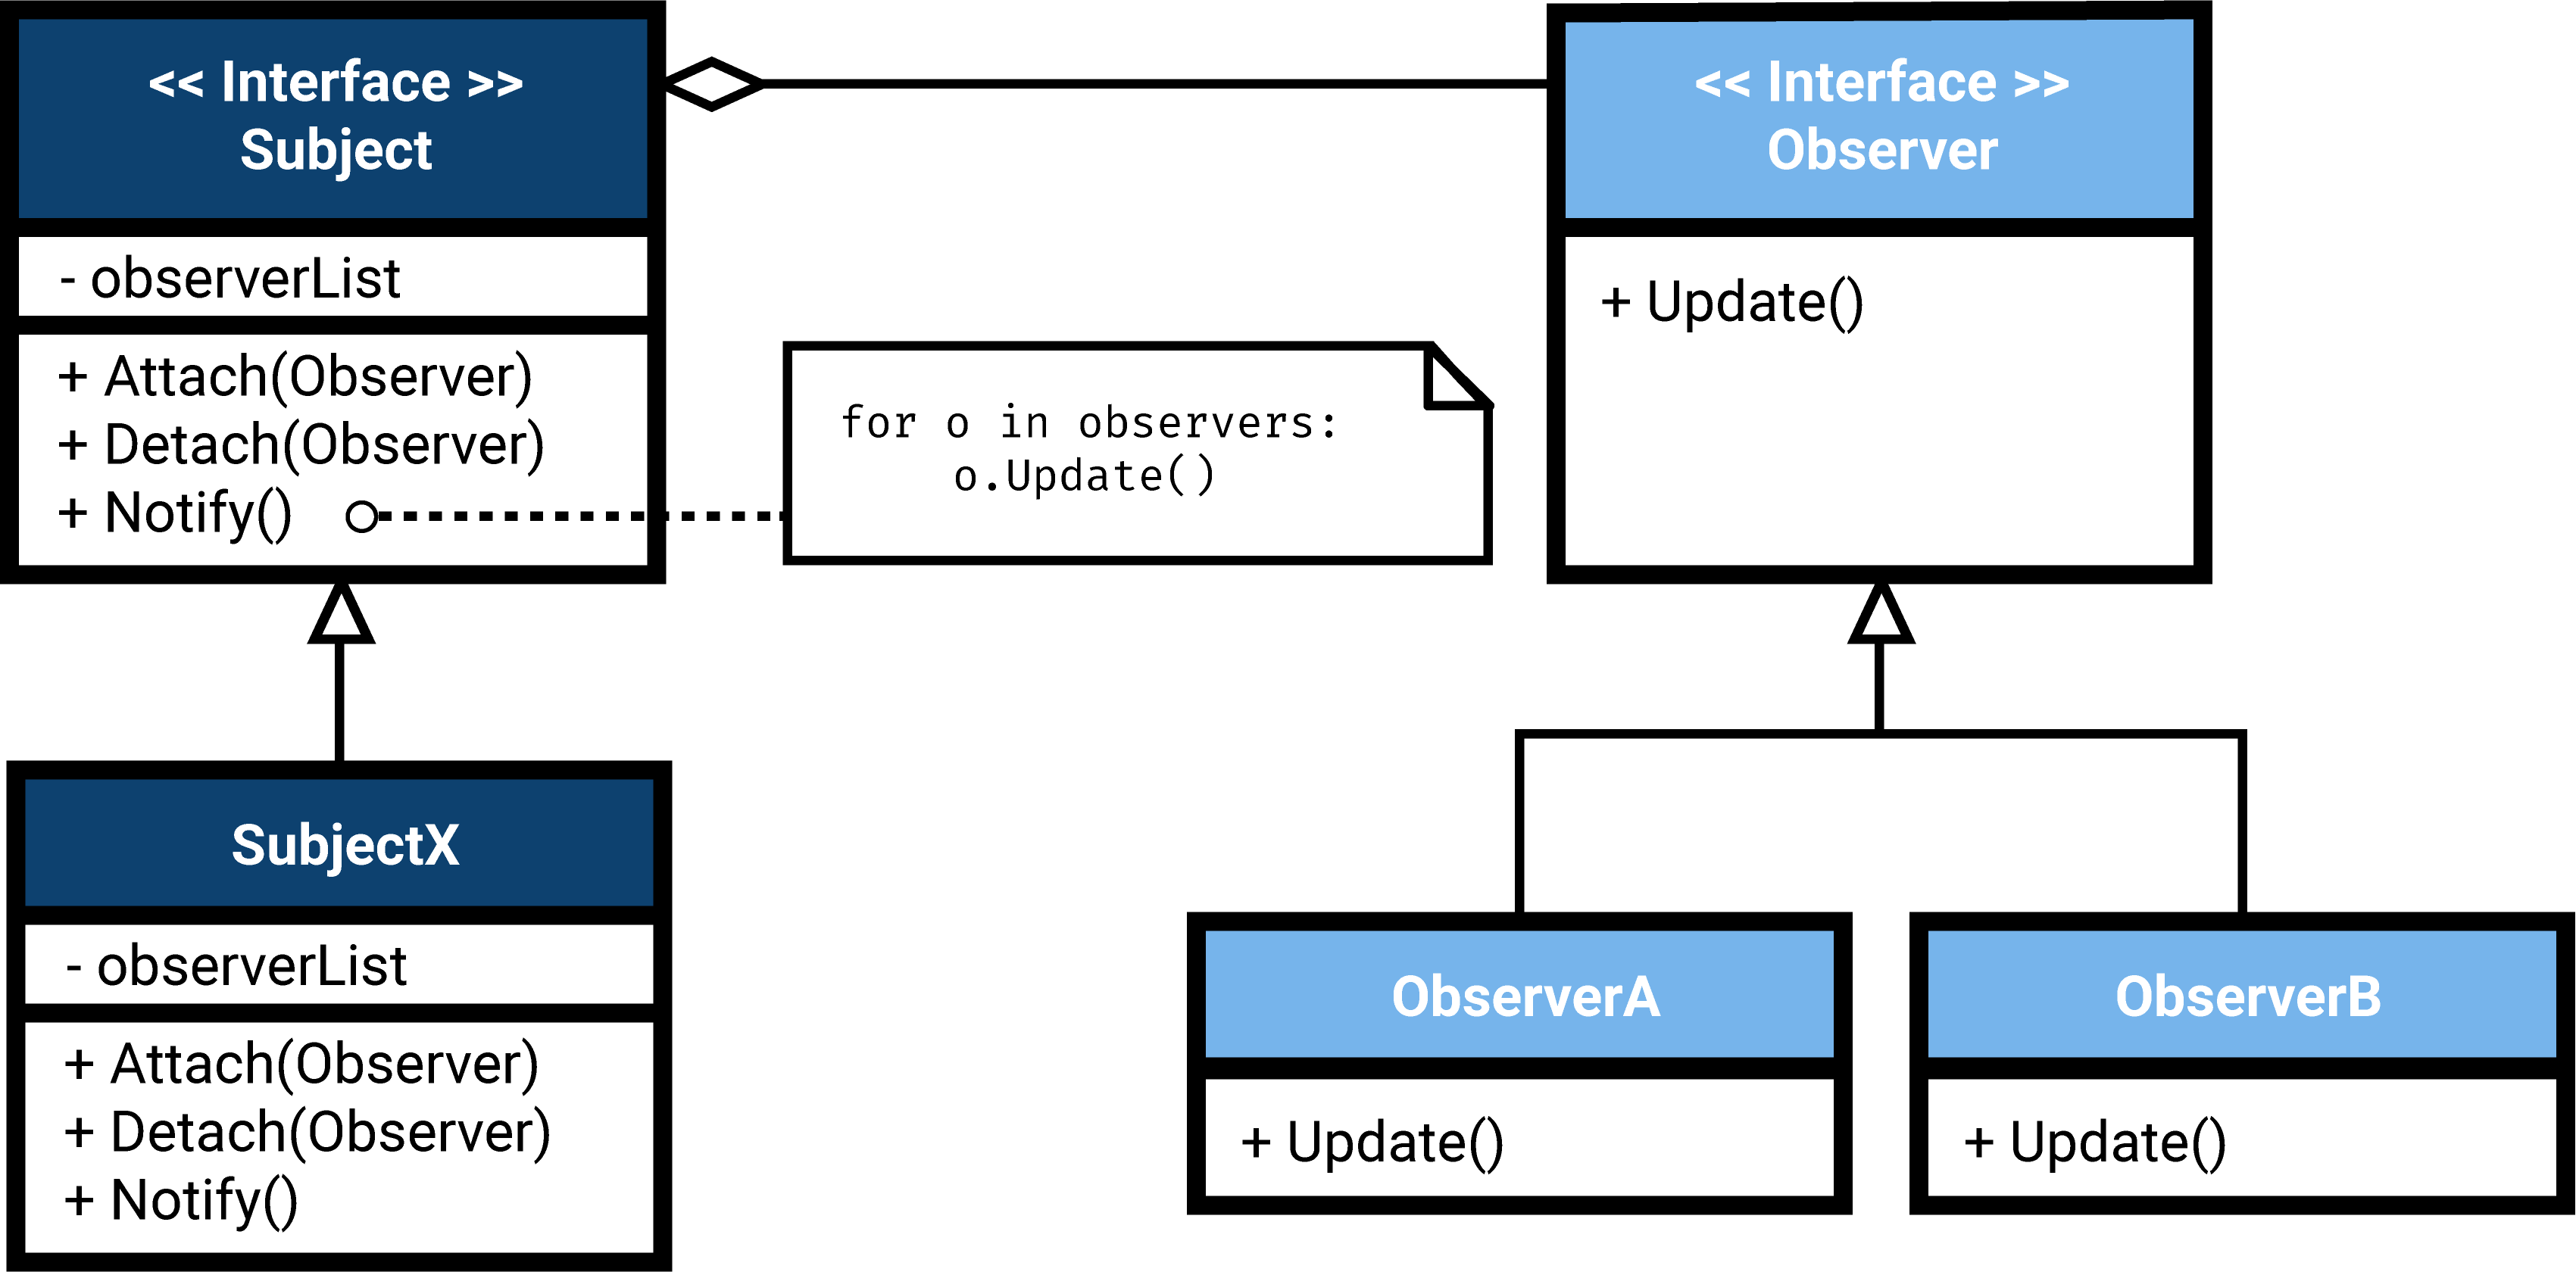 UML: In the observer pattern, a subject tracks the state changes of a certain object and notifies observers that are registered to that subject of any state changes that occur.